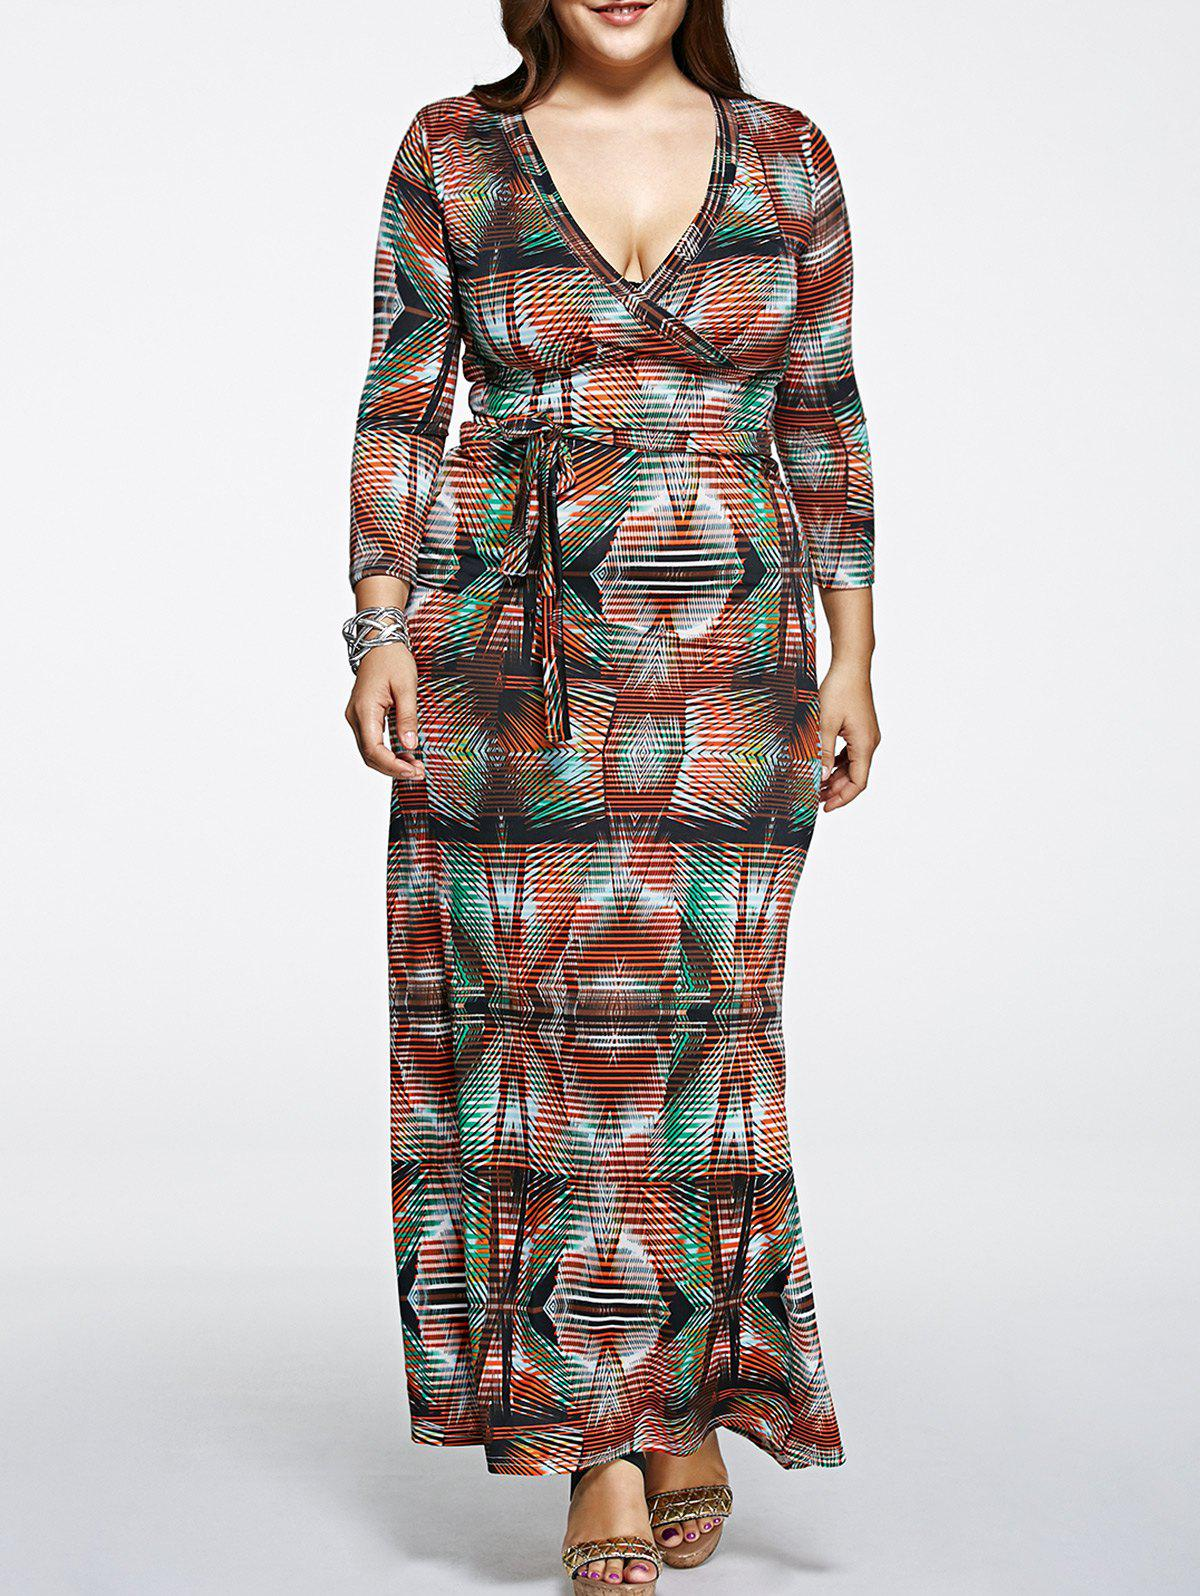 Oversized High Waist Abstract PrintDress - COLORMIX 5XL